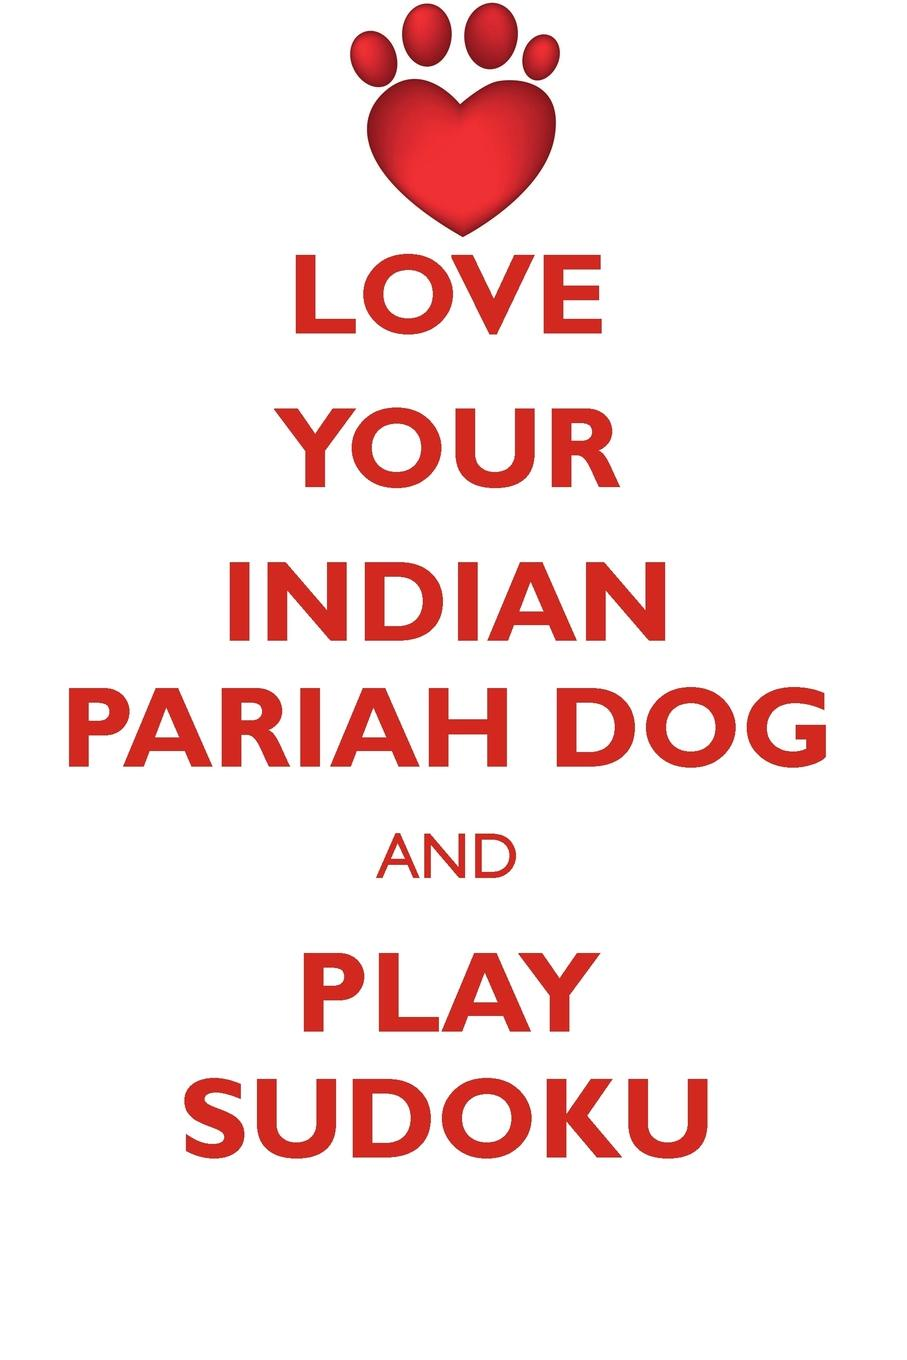 Loving Puzzles LOVE YOUR INDIAN PARIAH DOG AND PLAY SUDOKU INDIAN PARIAH DOG SUDOKU LEVEL 1 of 15